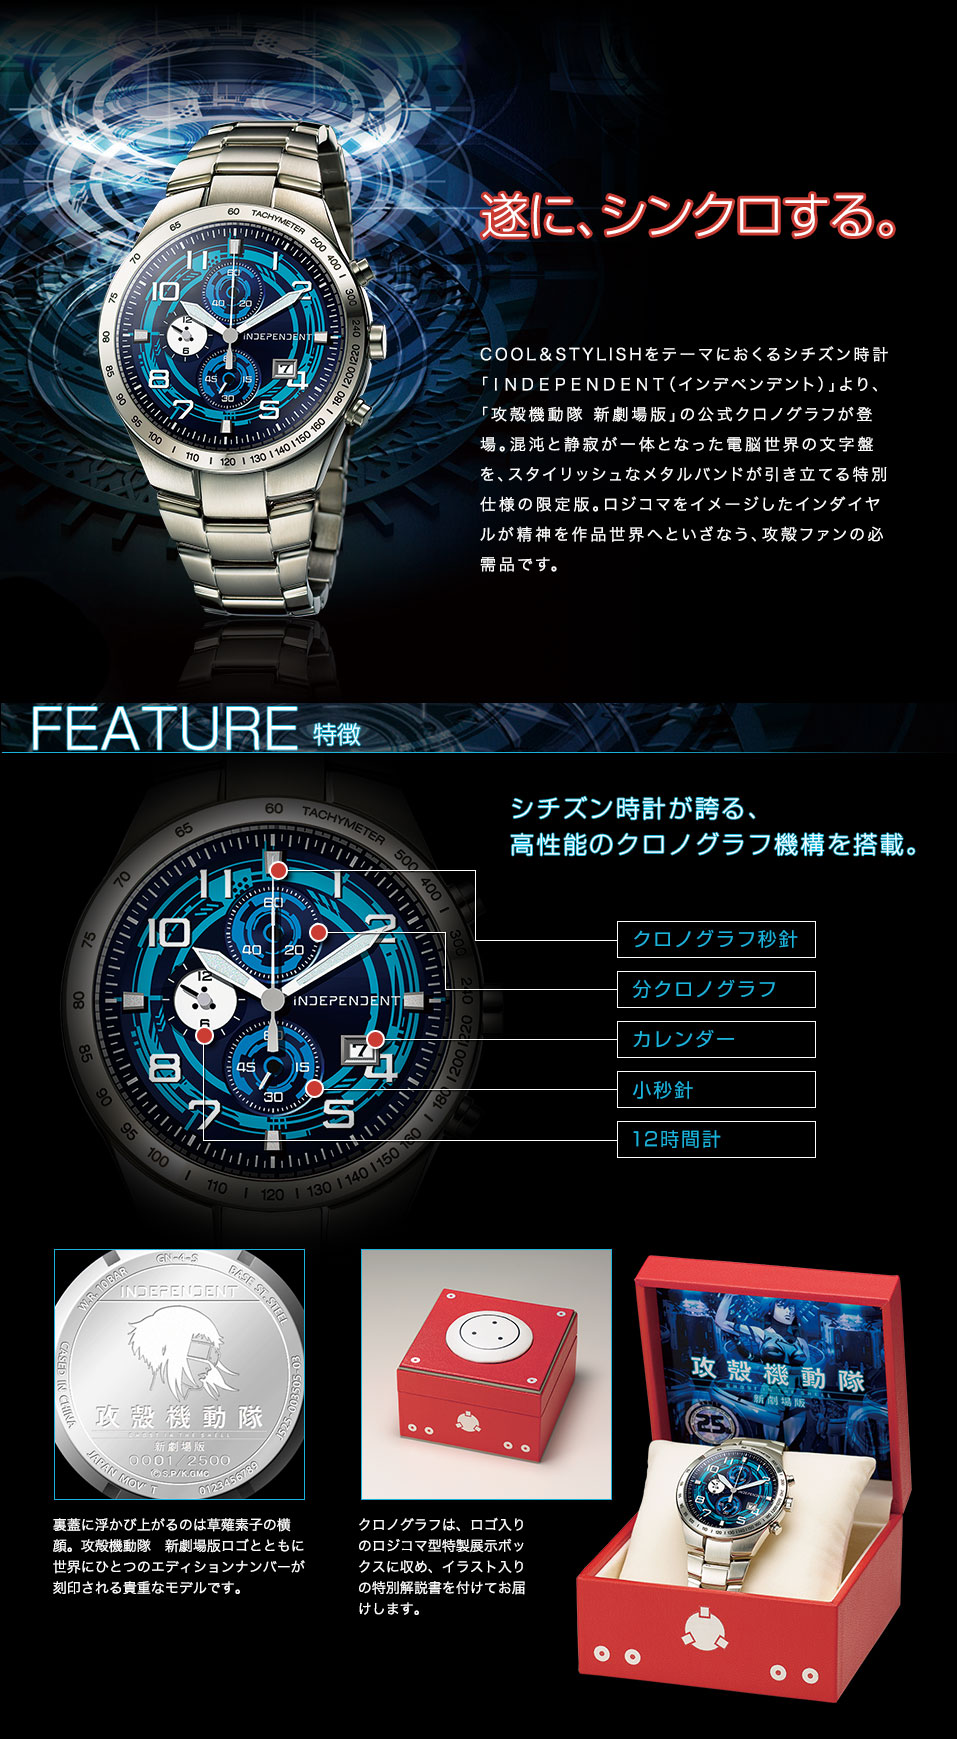 Ghost In The Shell Watch By Independent F Stands For